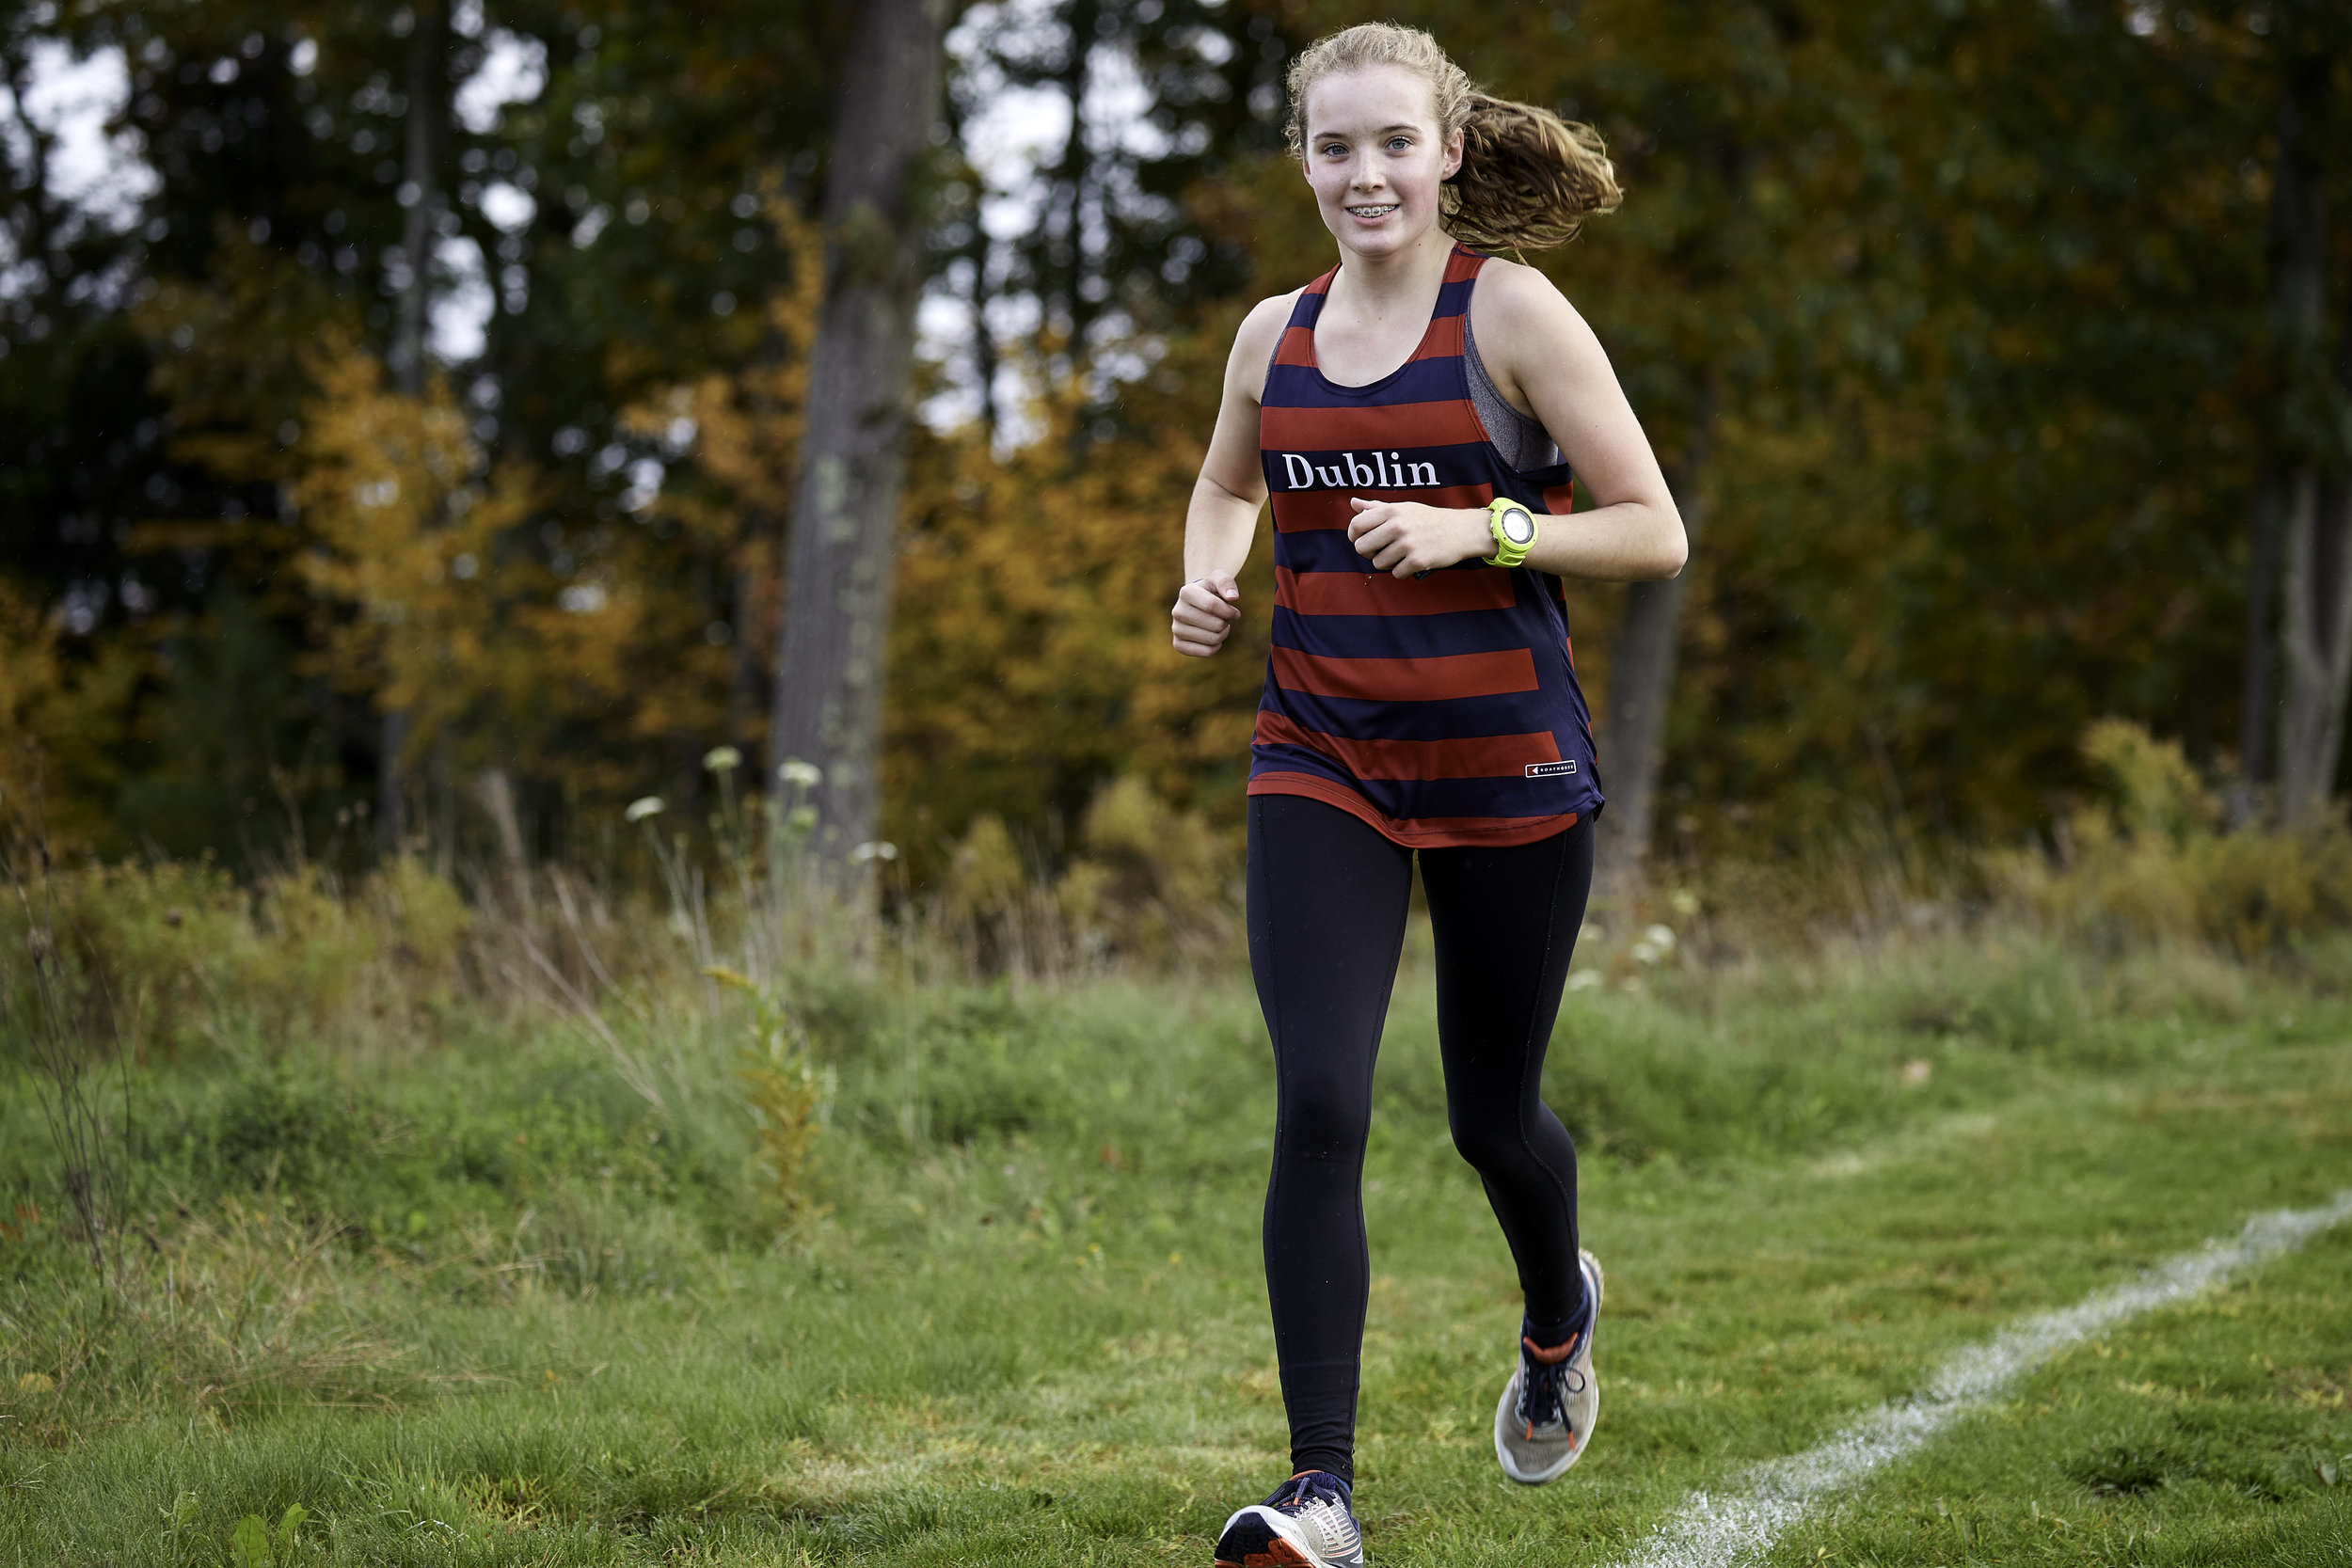 Dublion Invitational - October 12, 2018 - 136588.jpg